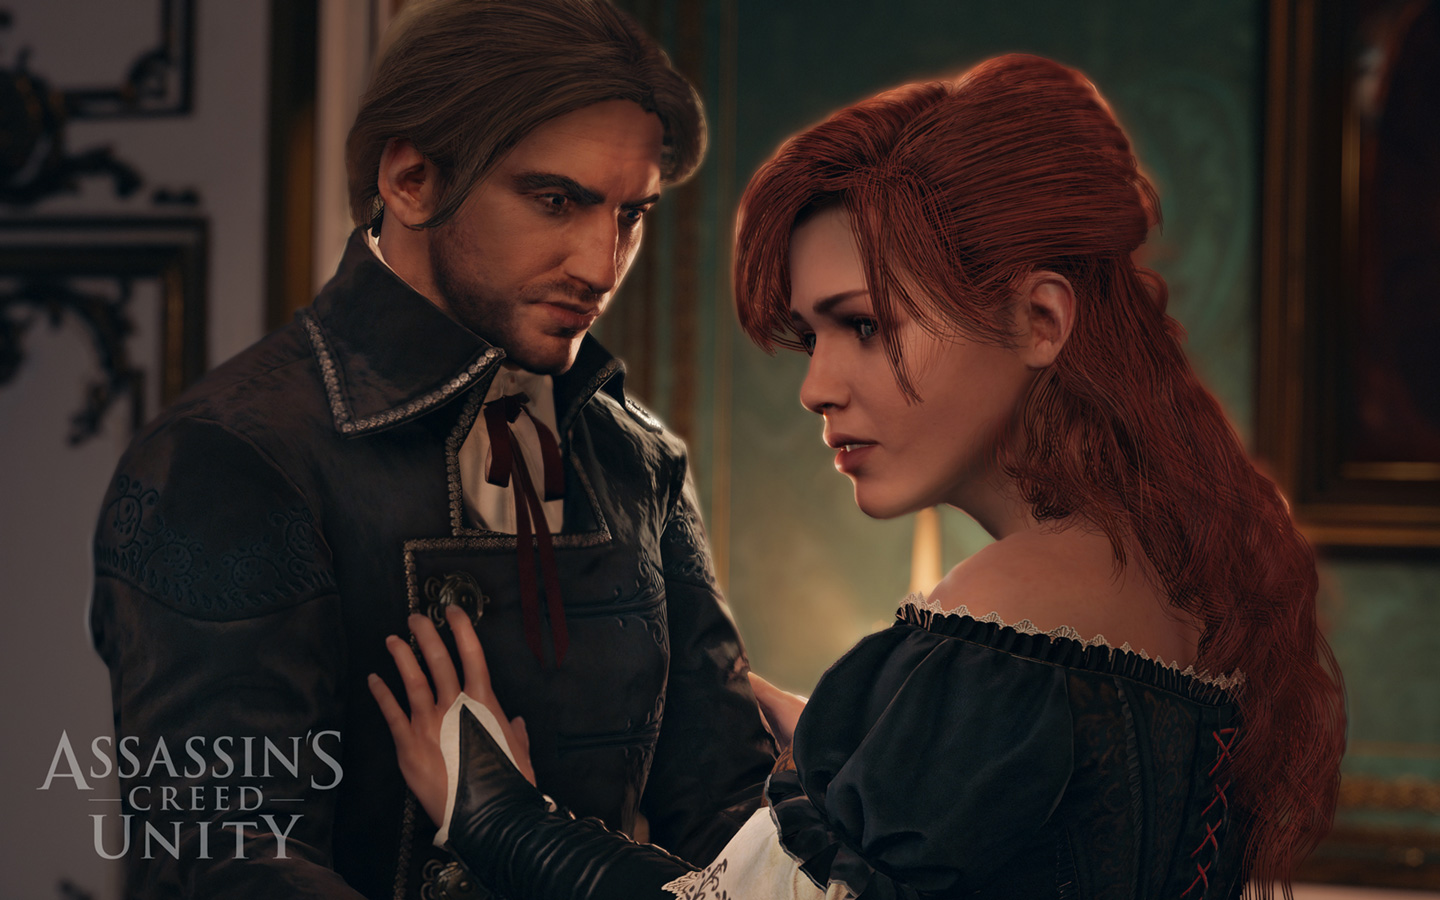 Assassin's Creed: Unity Wallpaper in 1440x900